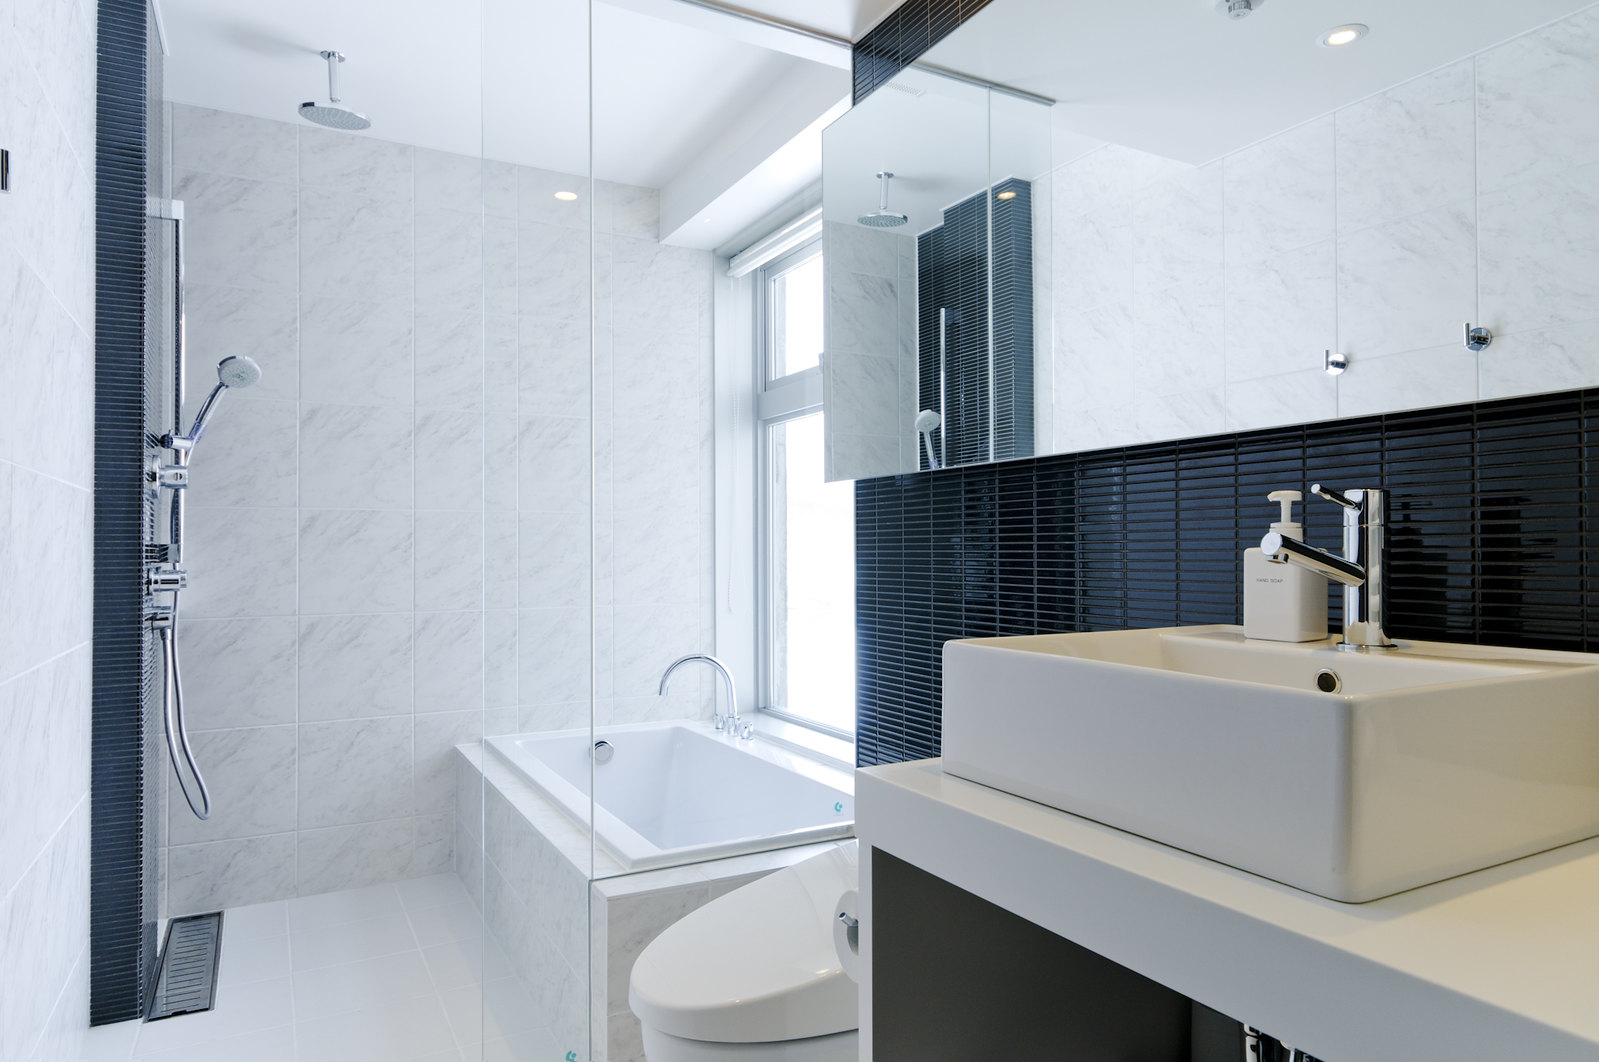 The fully fitted bathroom in a 2 bedroom Premium apartment in Kizuna, Niseko.